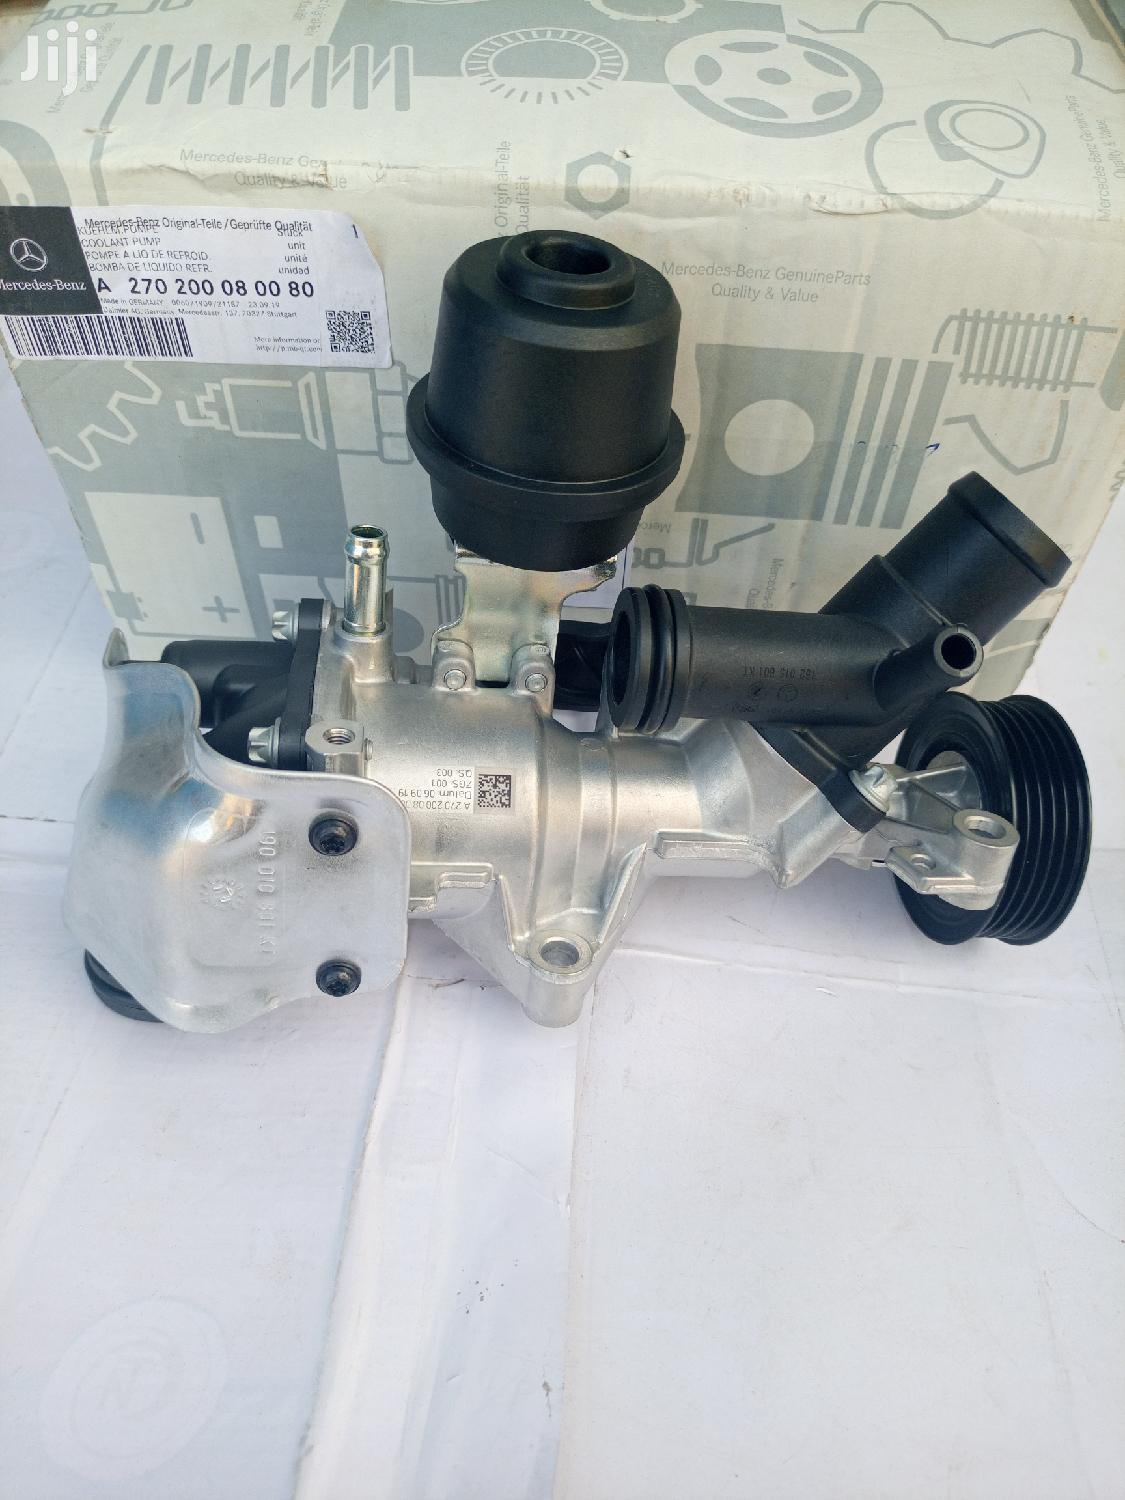 Mercedes Benz 270 Engine Water Pump | Vehicle Parts & Accessories for sale in Kokomlemle, Greater Accra, Ghana